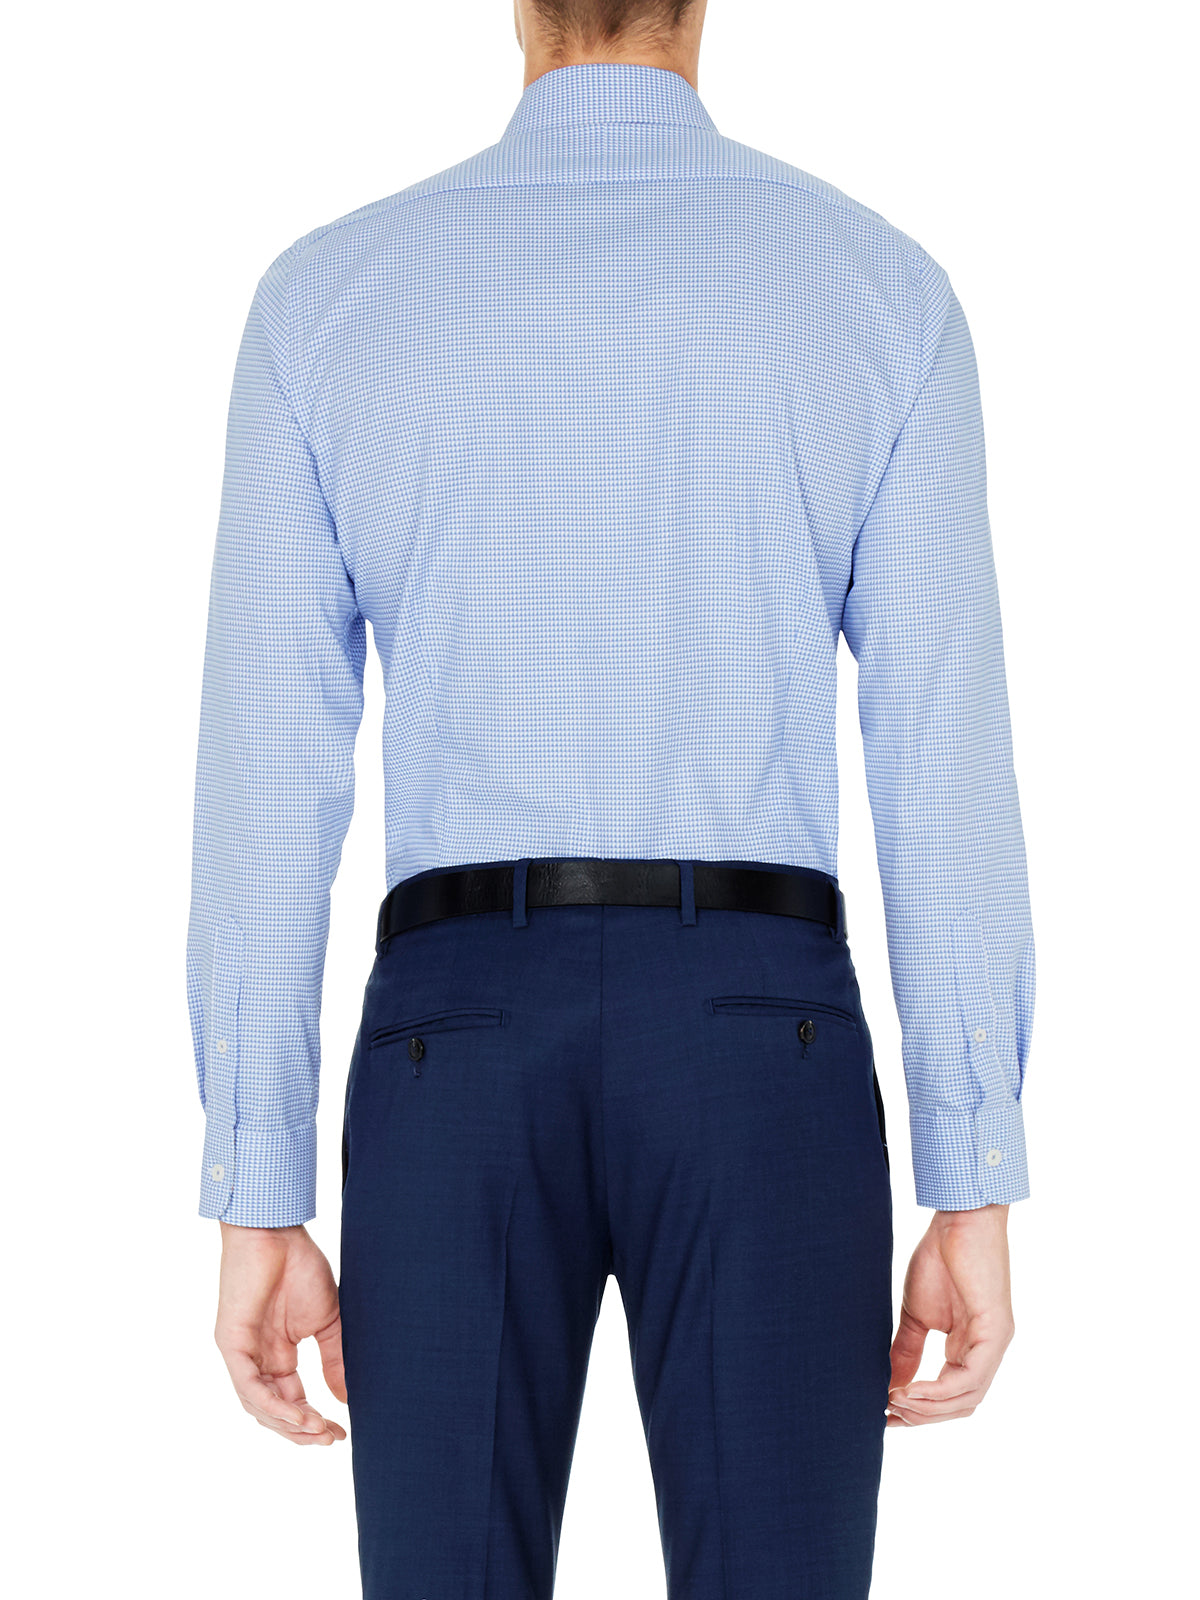 BECKTON SLIM FIT SHIRT NAVY